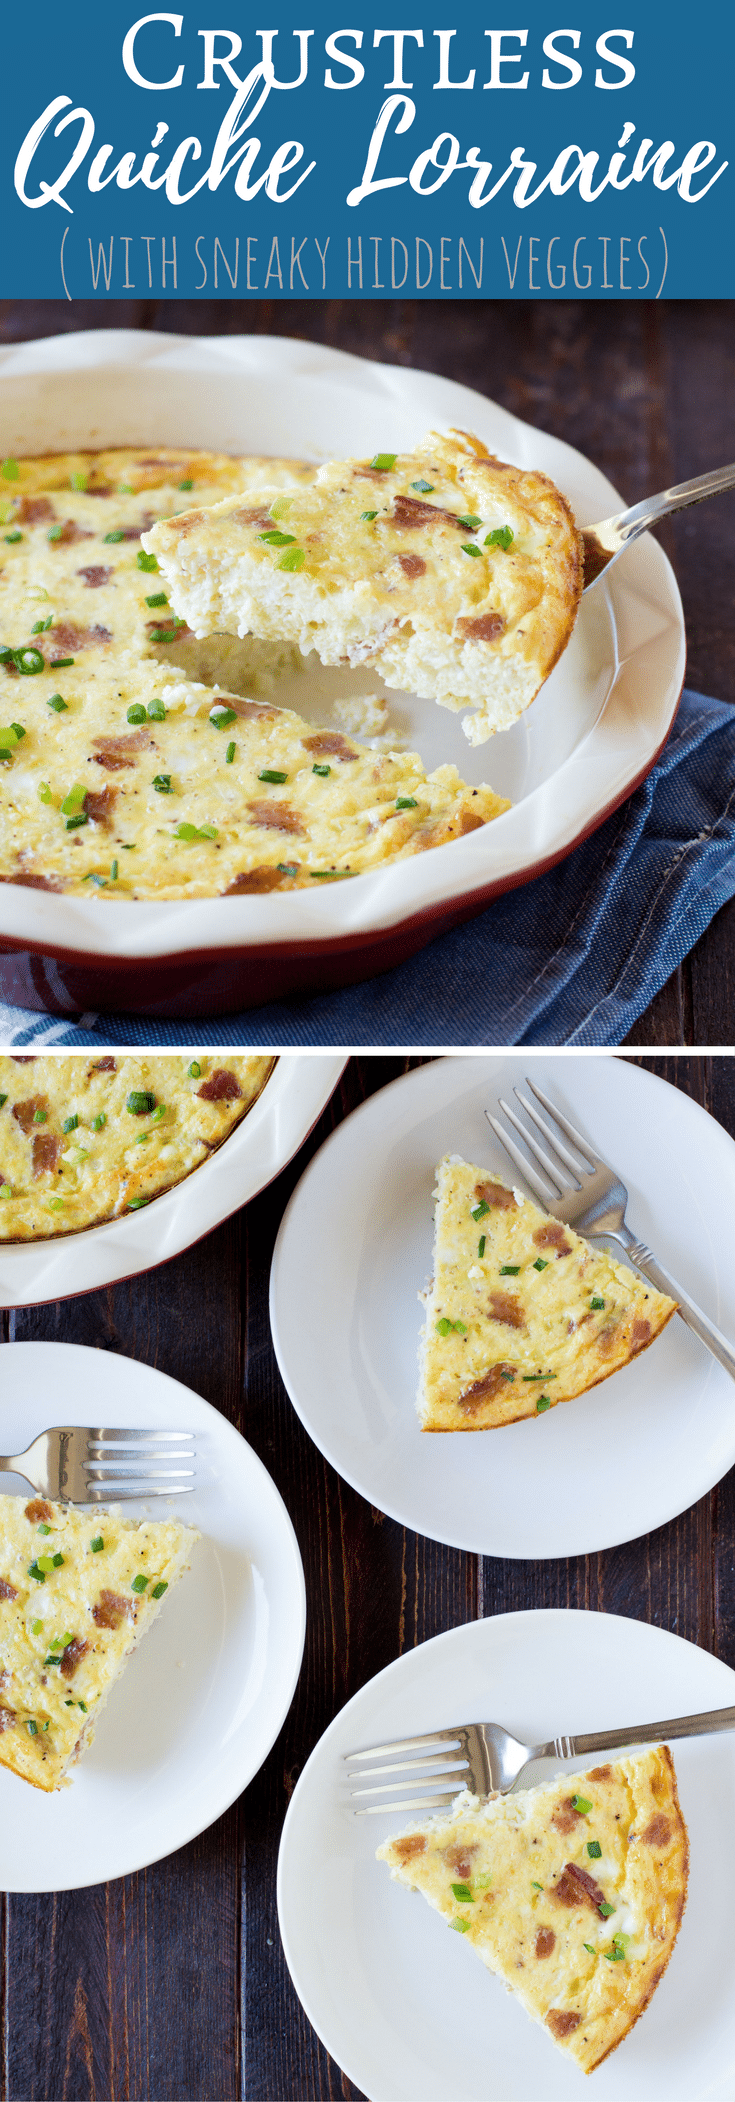 Healthier Crustless Quiche Lorraine is a smarter brunch recipe, all the rich creamy flavor but it's hiding extra veggies for the win!